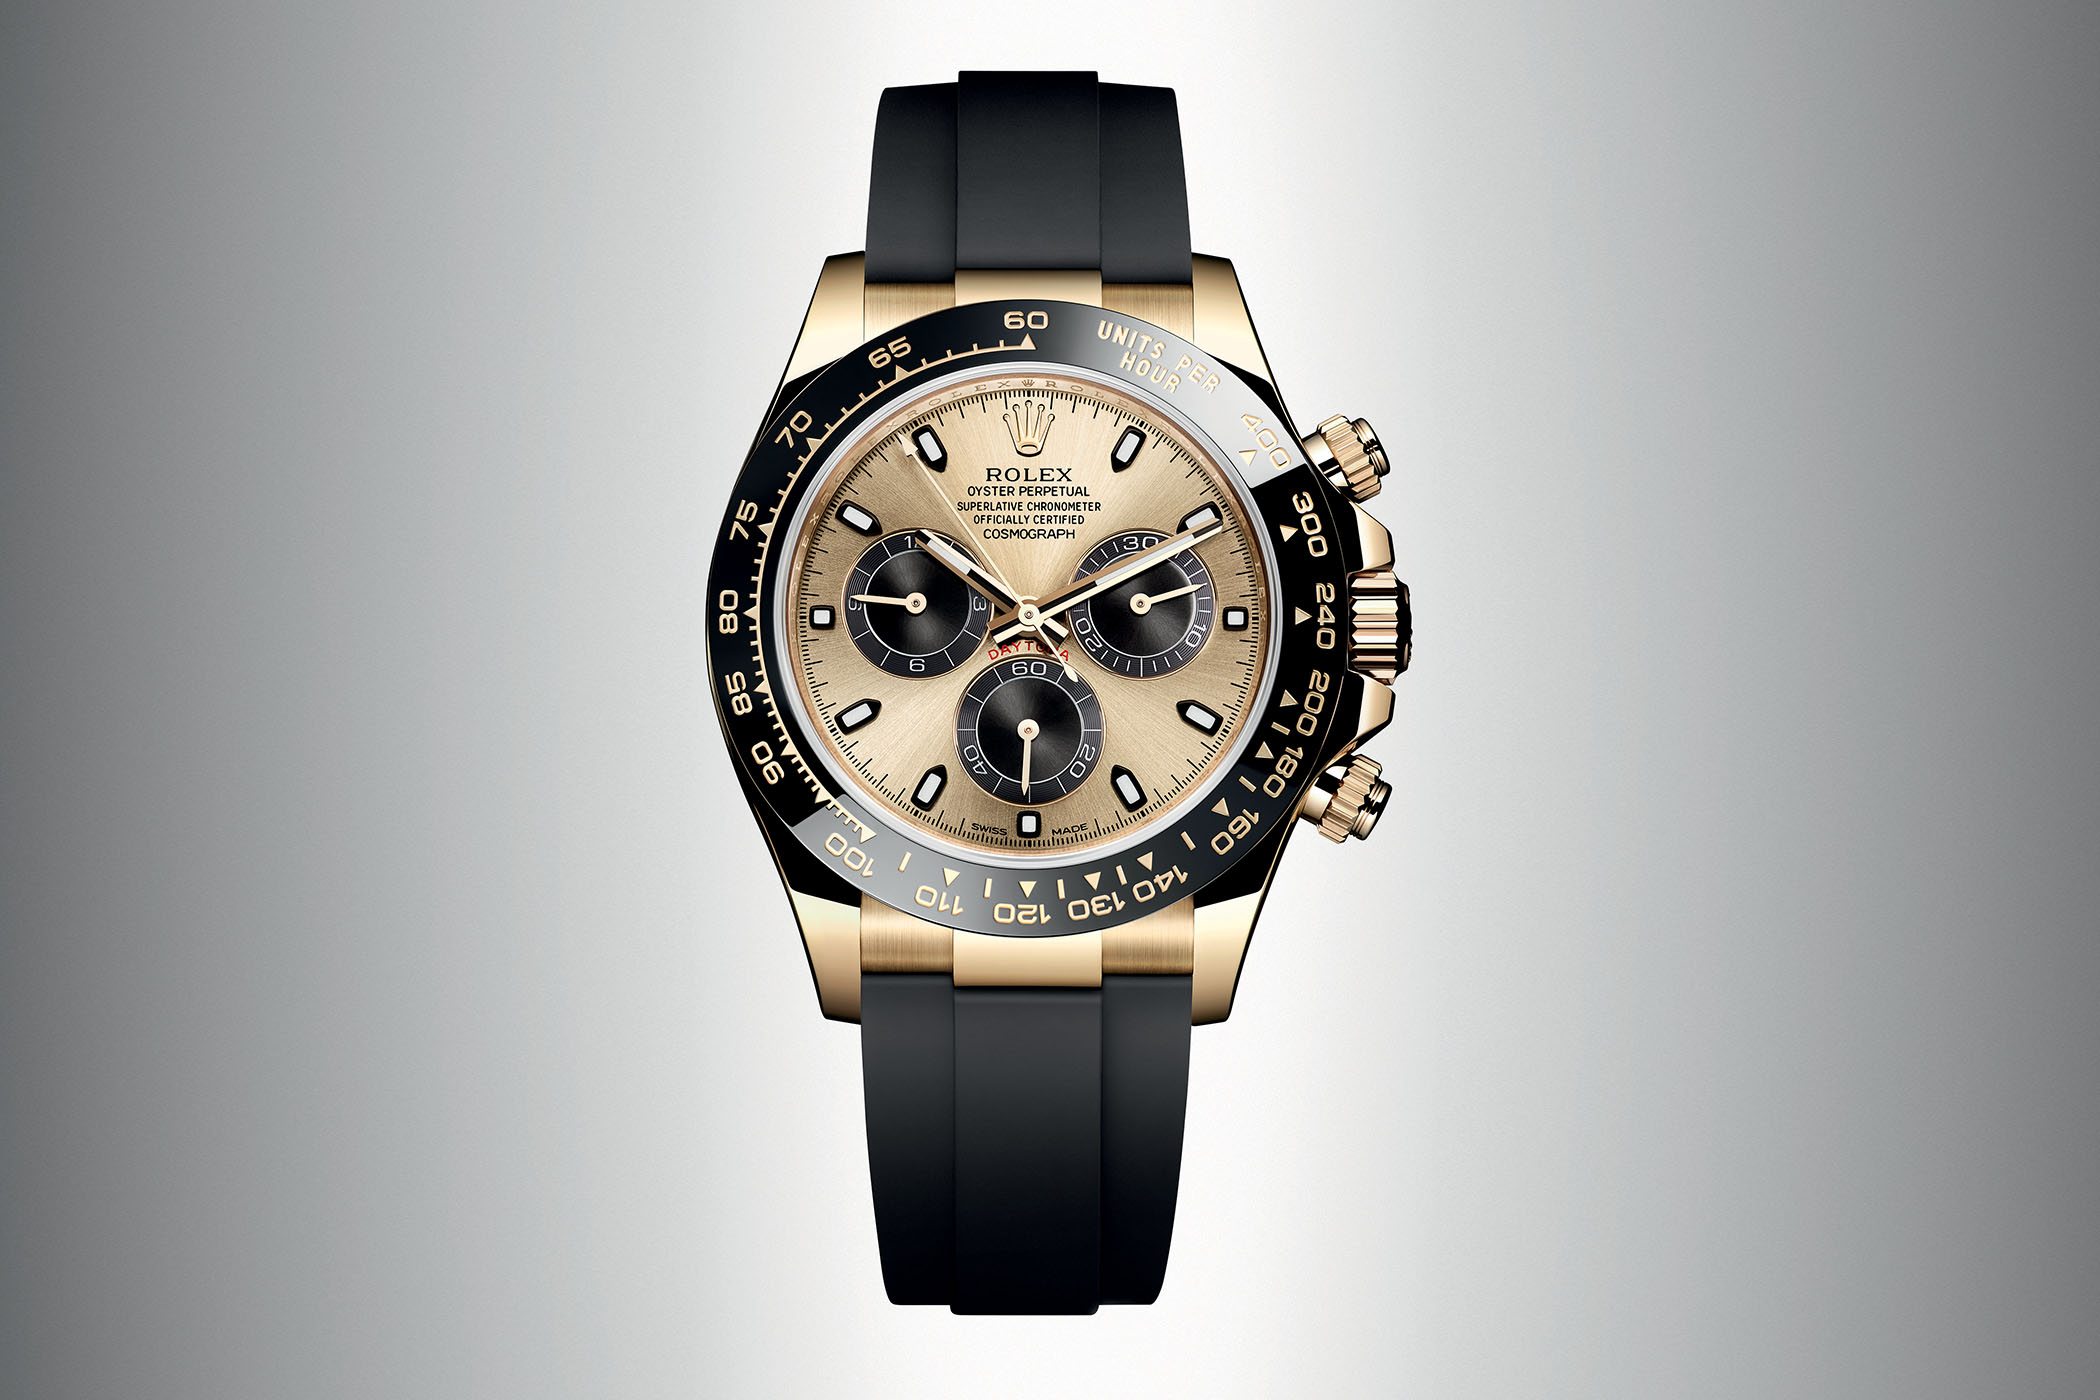 Baselworld 2017 Rolex Daytona Gold Amp Ceramic With